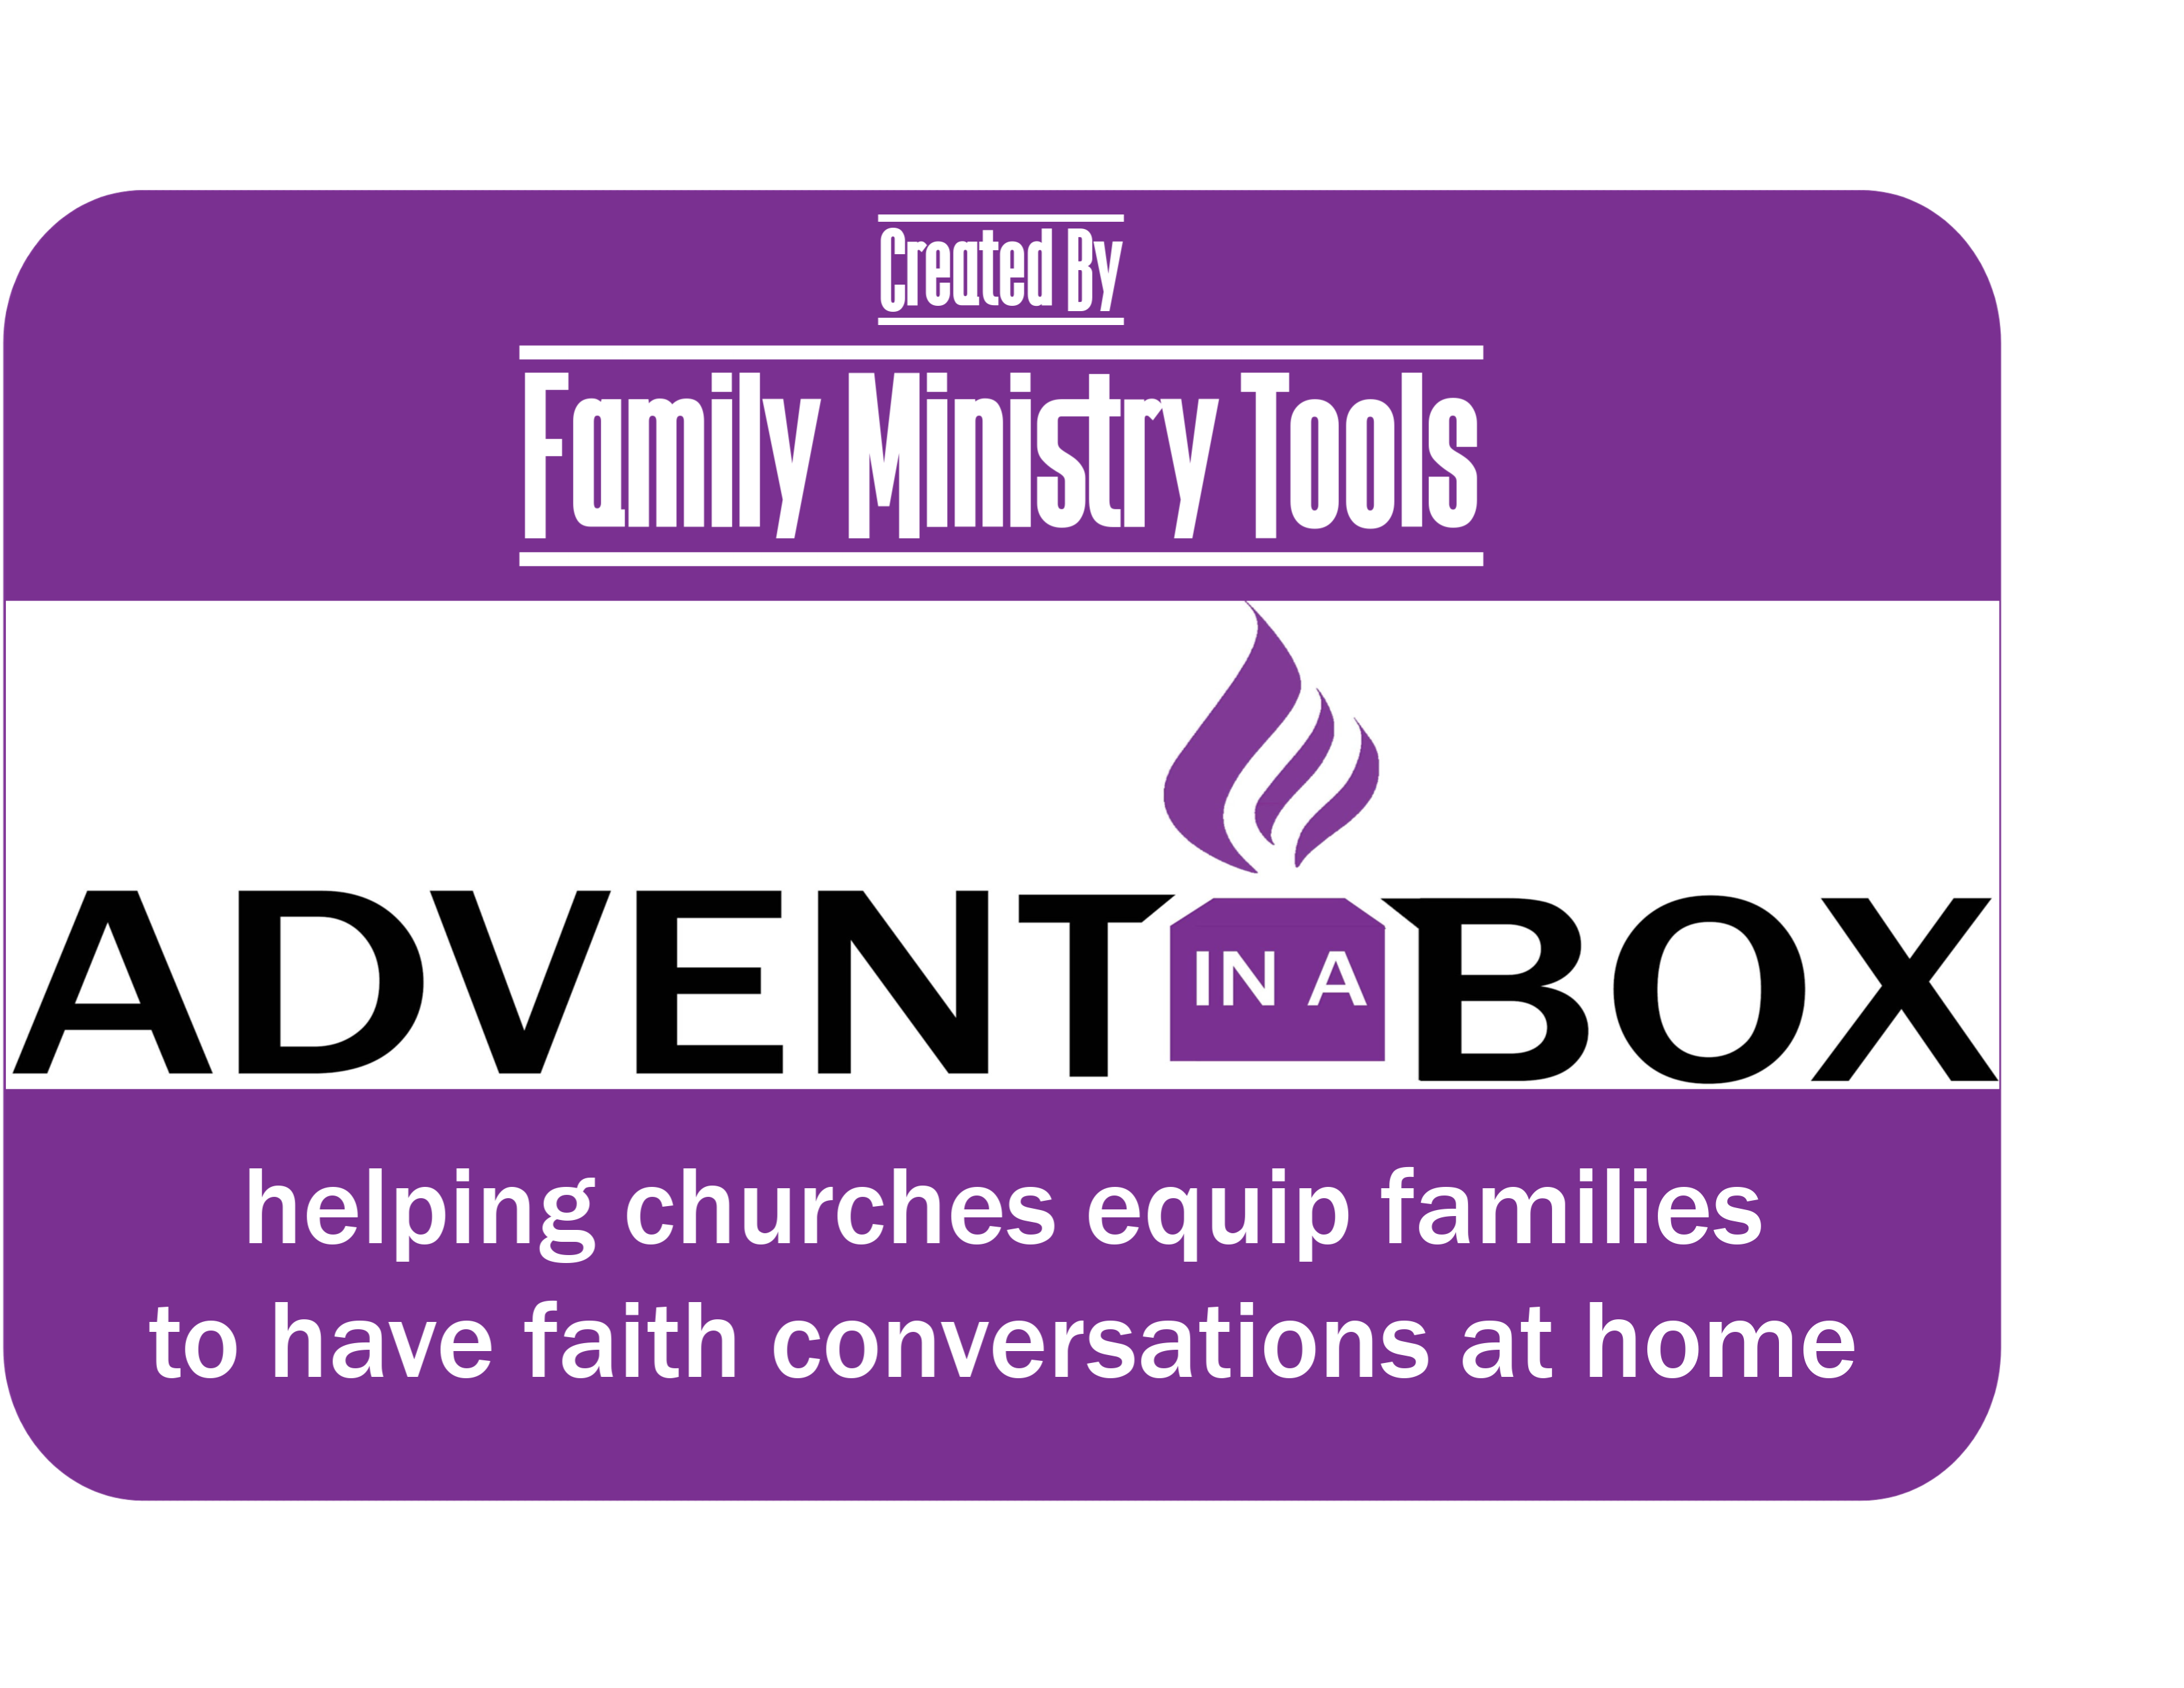 Family Ministry Tools